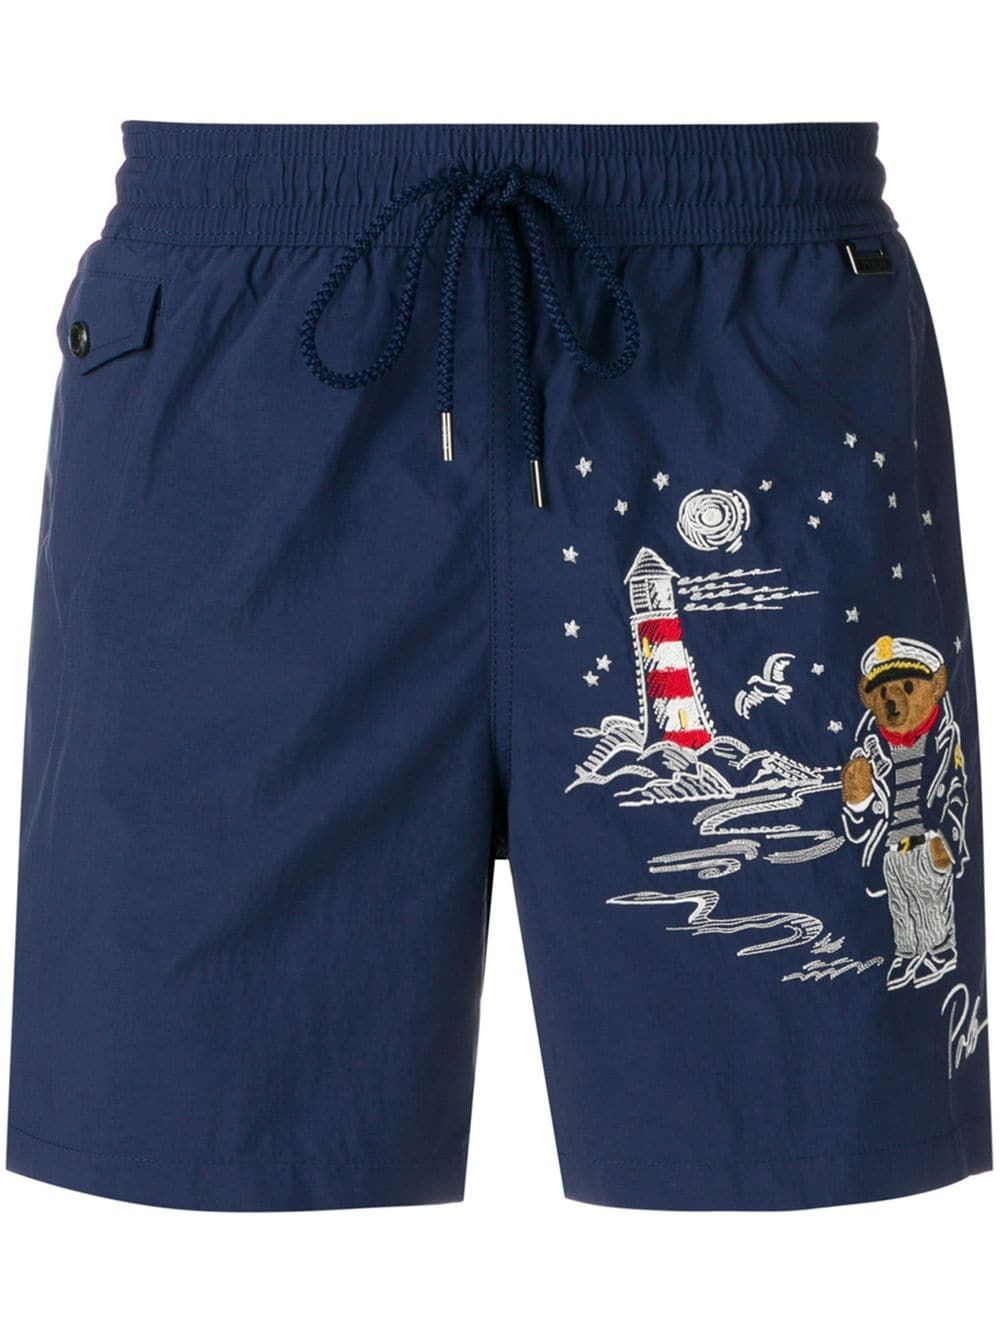 buy cheap to buy 100% top quality Polo Ralph Lauren sailor-motif shorts - Blue   Products in ...